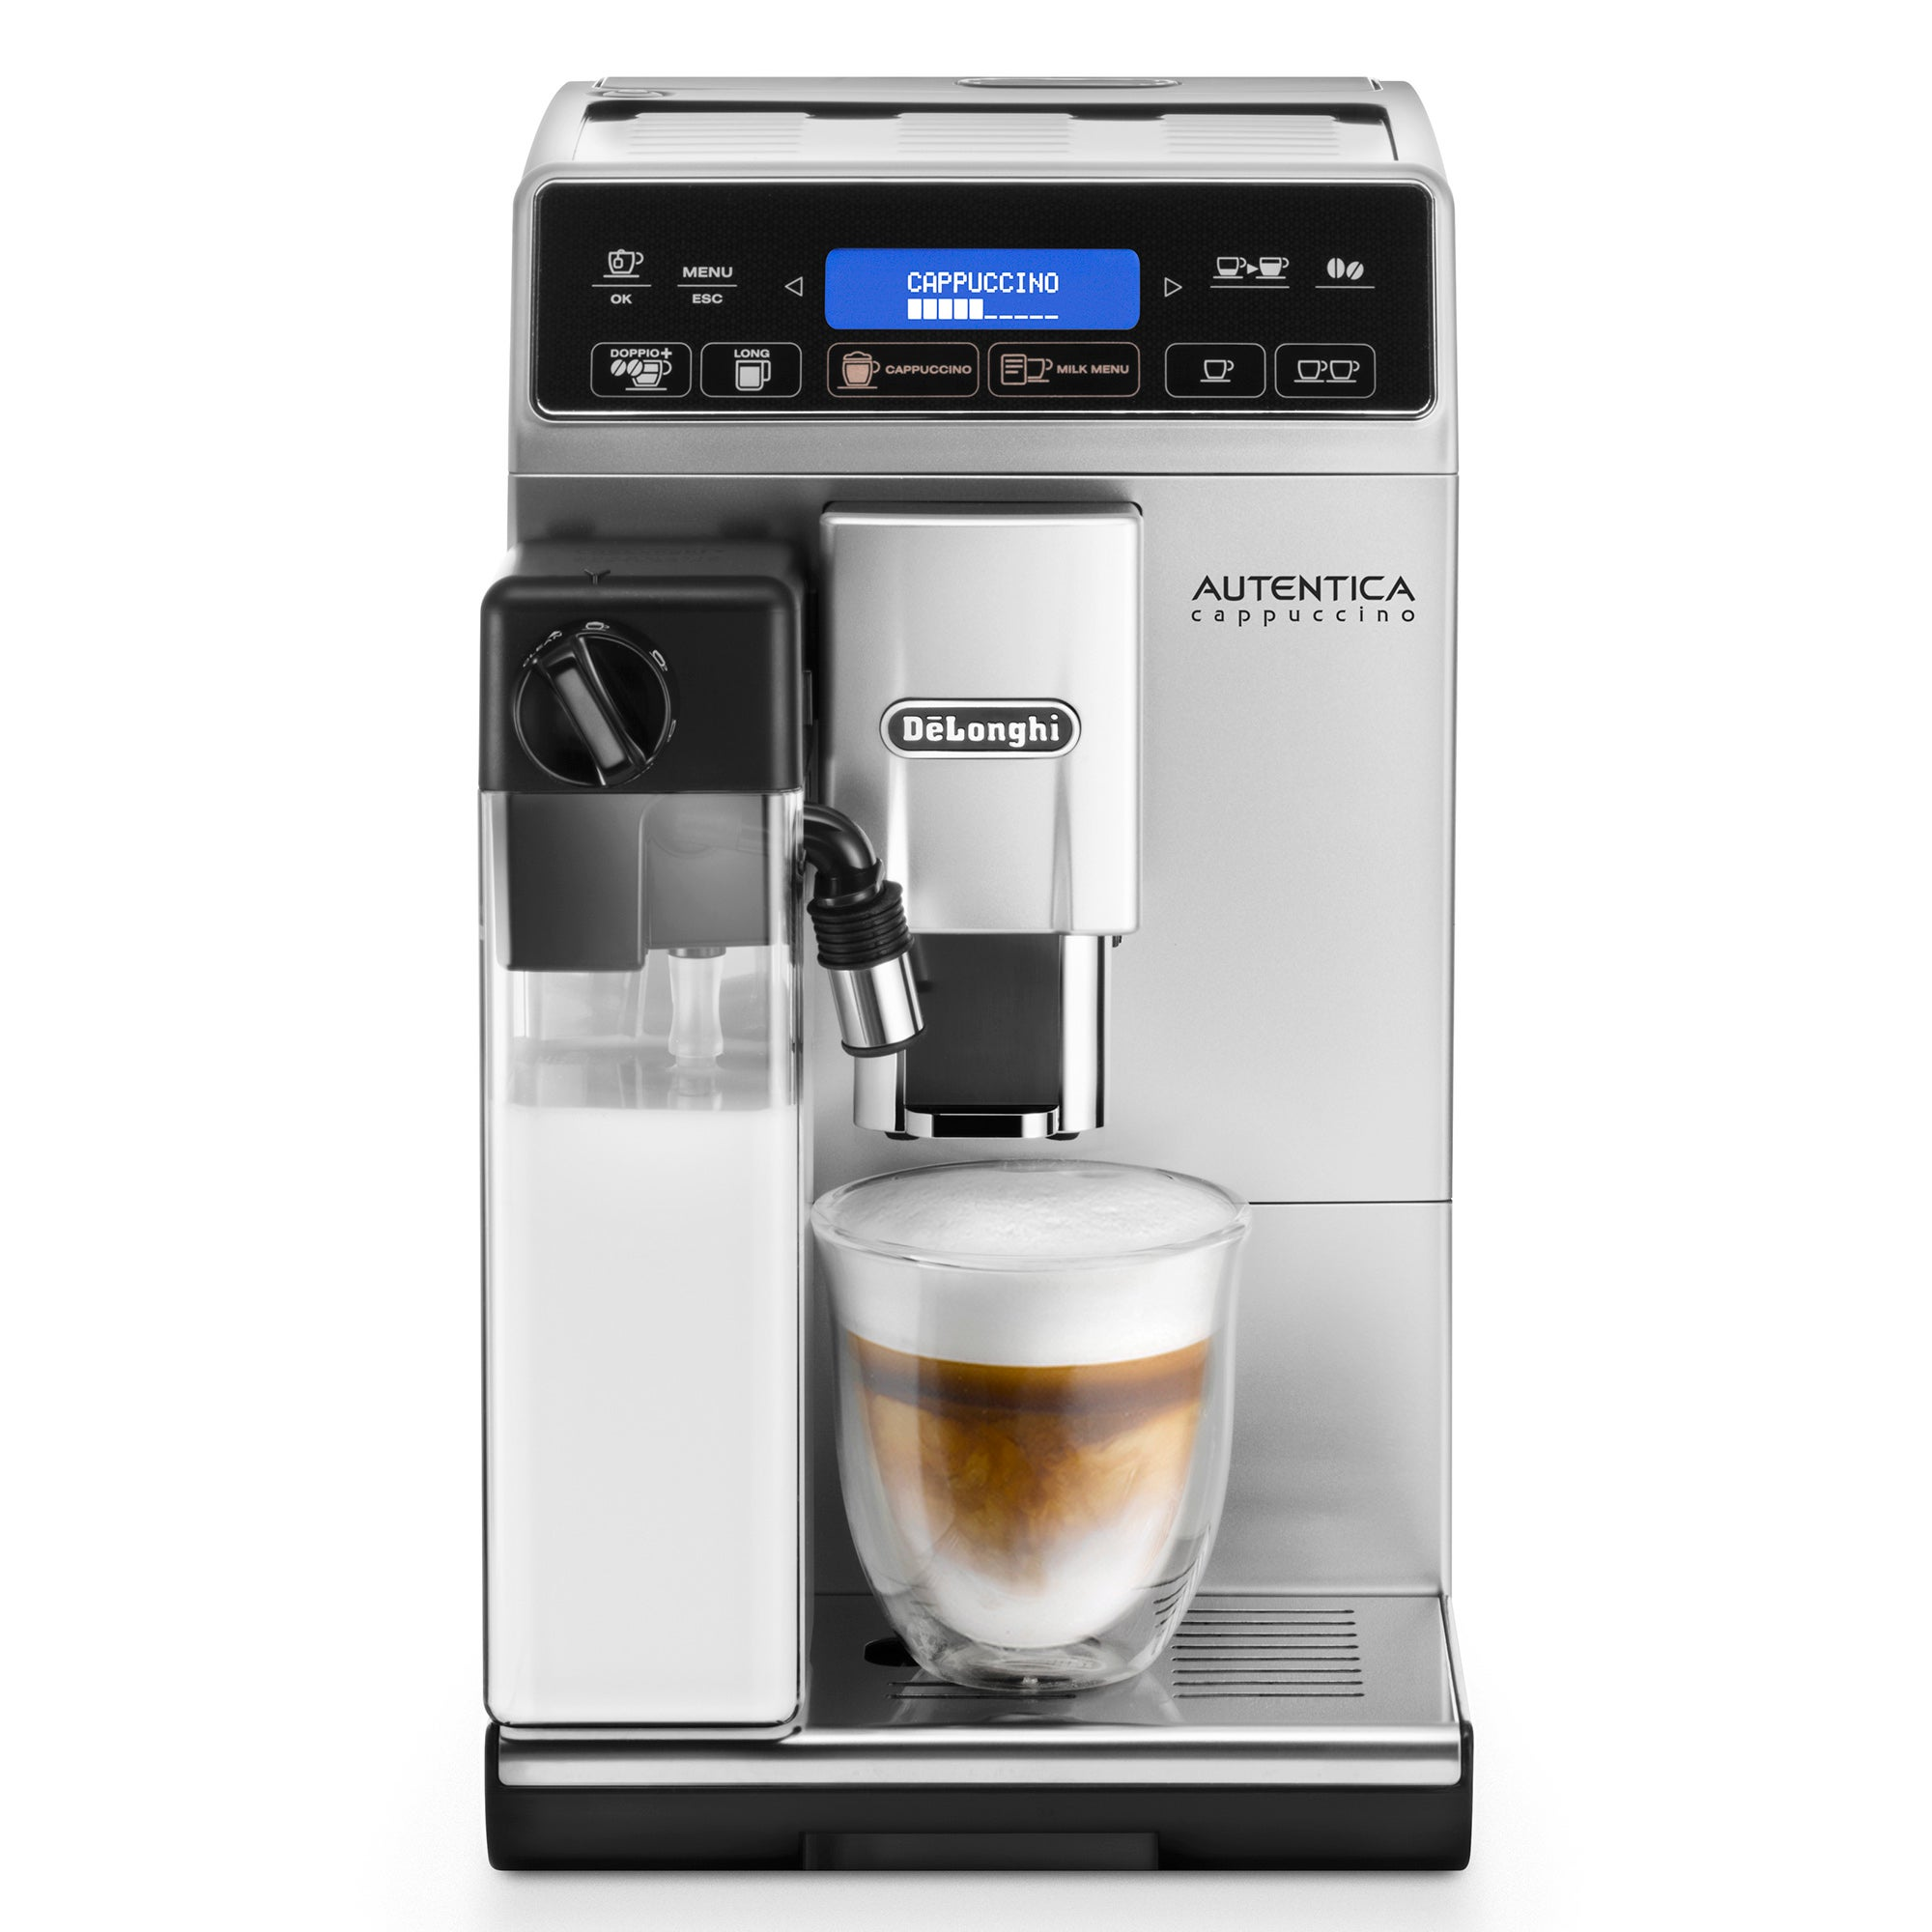 Photo of Delonghi authentica cappuccino b2c coffee machine etam29.660.sb black